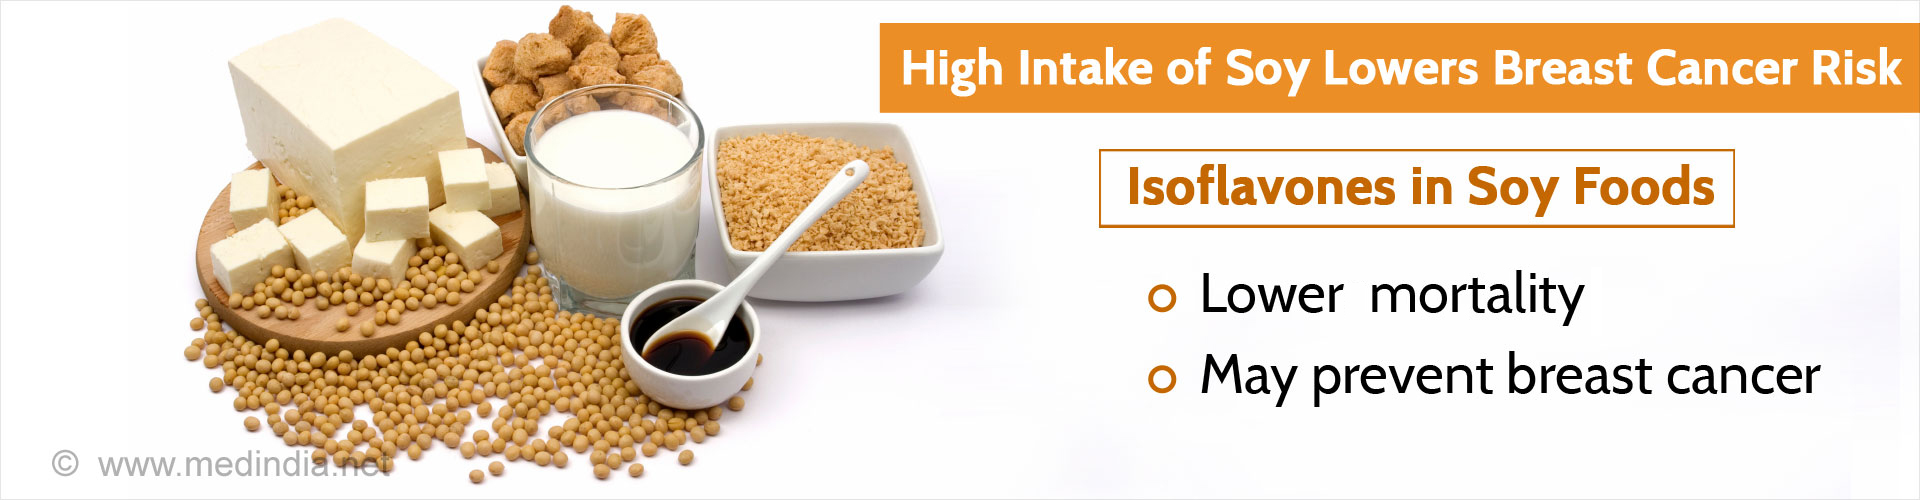 High intake of soy lowers breast cancer risk  Isoflavones in Soy Foods - Lowers mortality - May prevent breast cancer